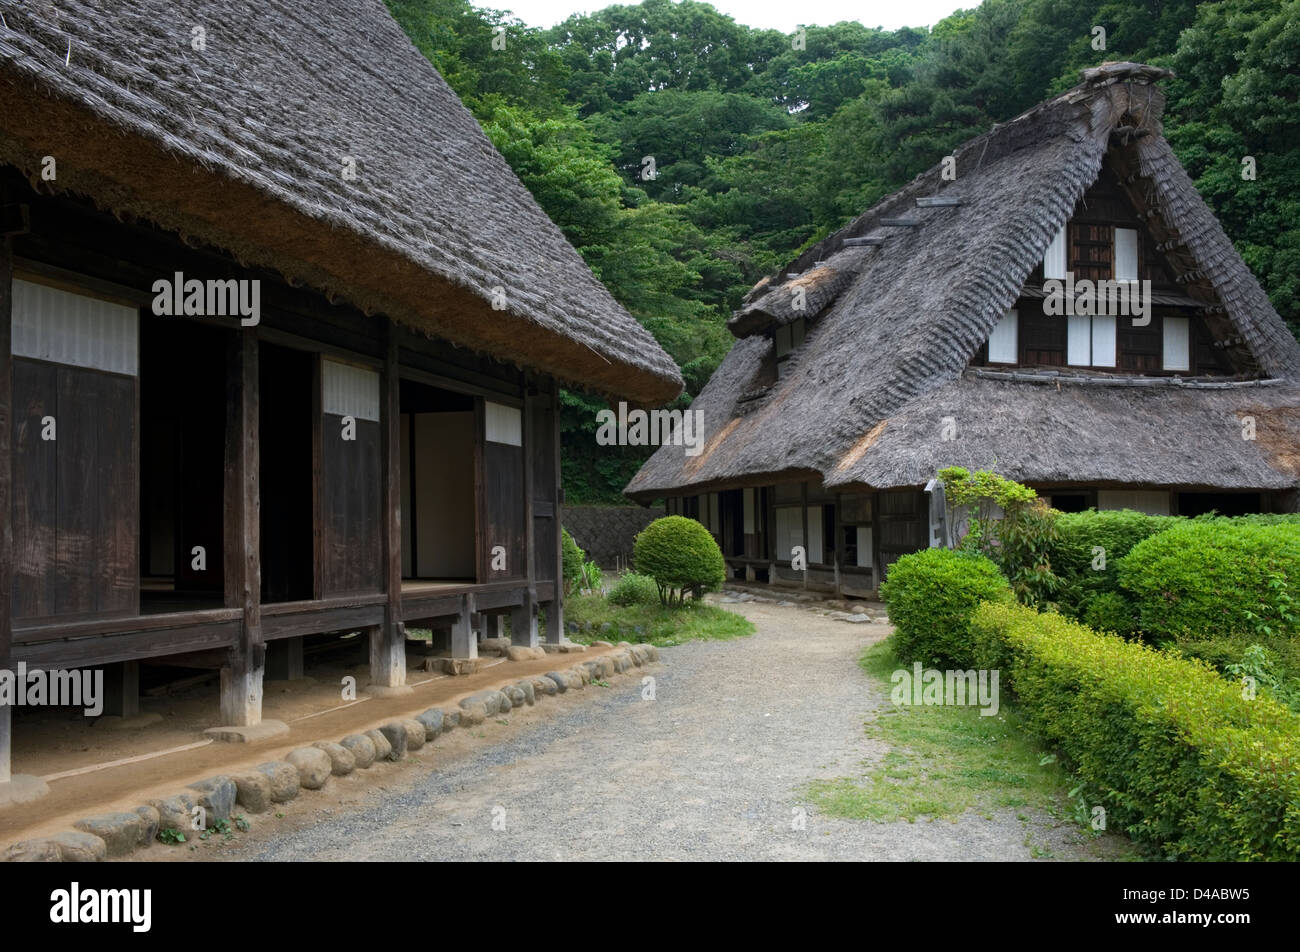 Historic countryside kayabuki thatched-roof village farm houses at the Nihon Minkaen open-air folk museum in Kawasaki, - Stock Image